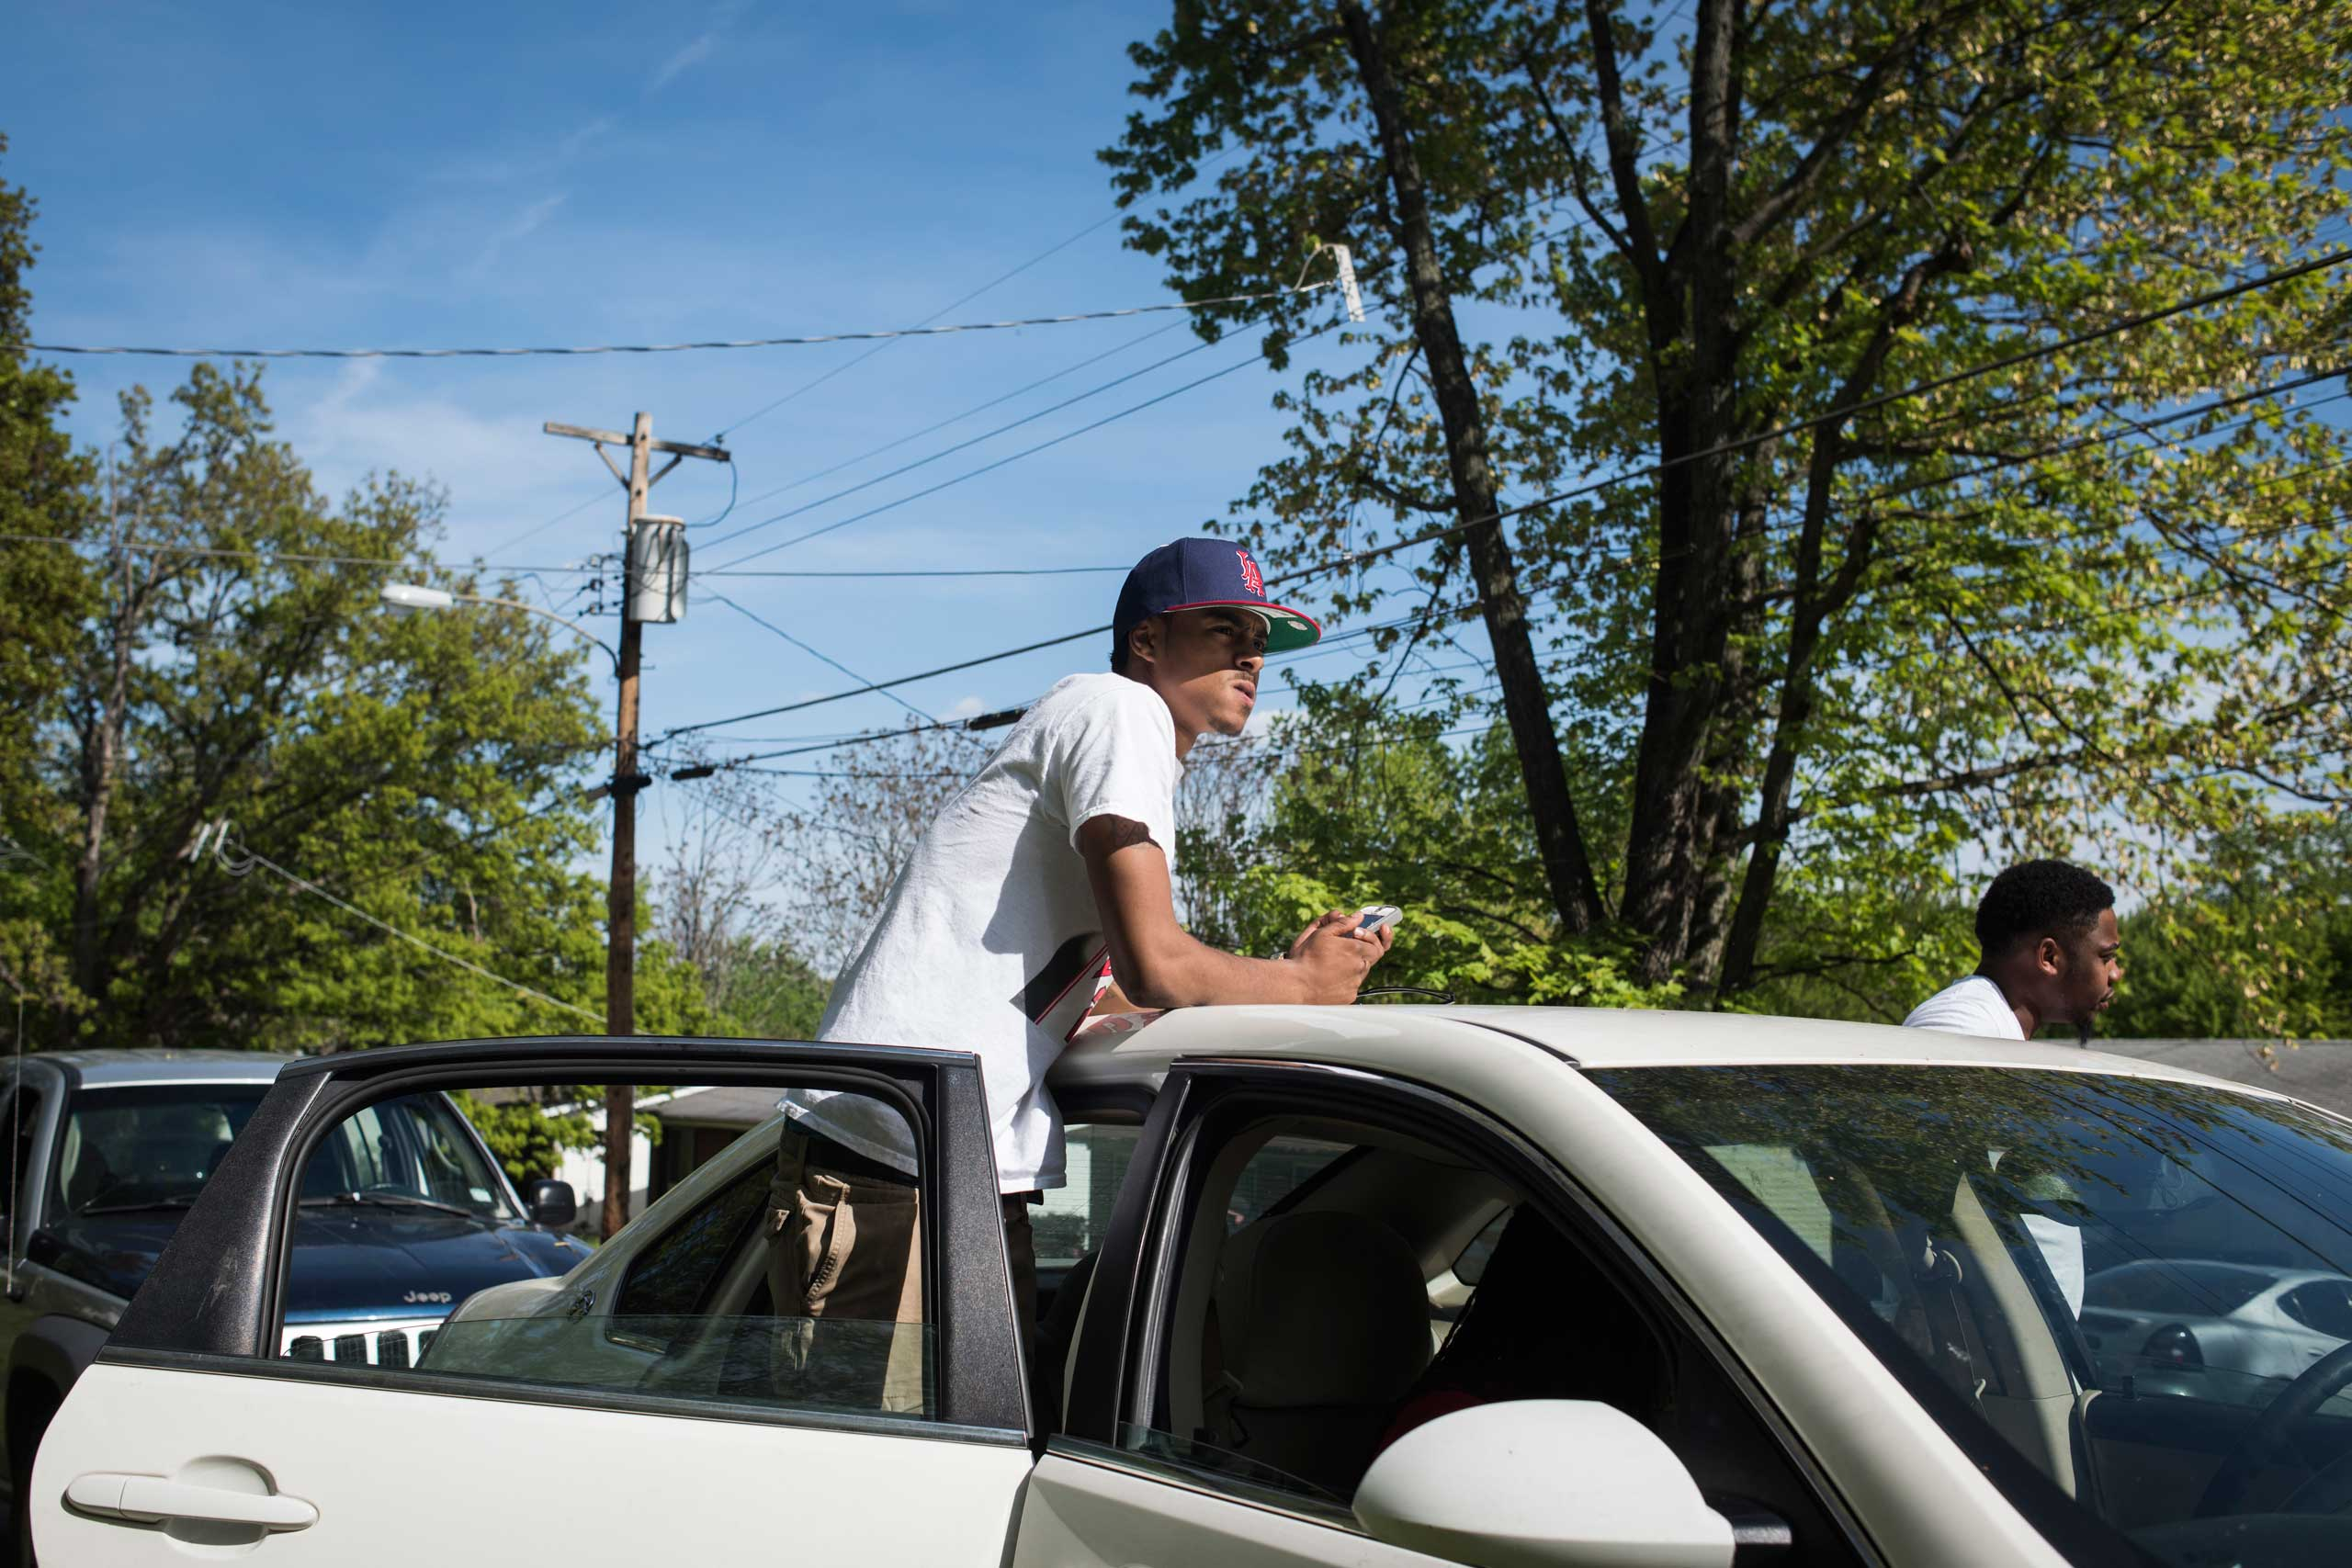 Tee Jay Banks surveys the street while hanging out with friends in the Bermuda neighborhood of Ferguson, Mo. Banks, stopped attending college because of high costs but was hoping to save up money to return to school.